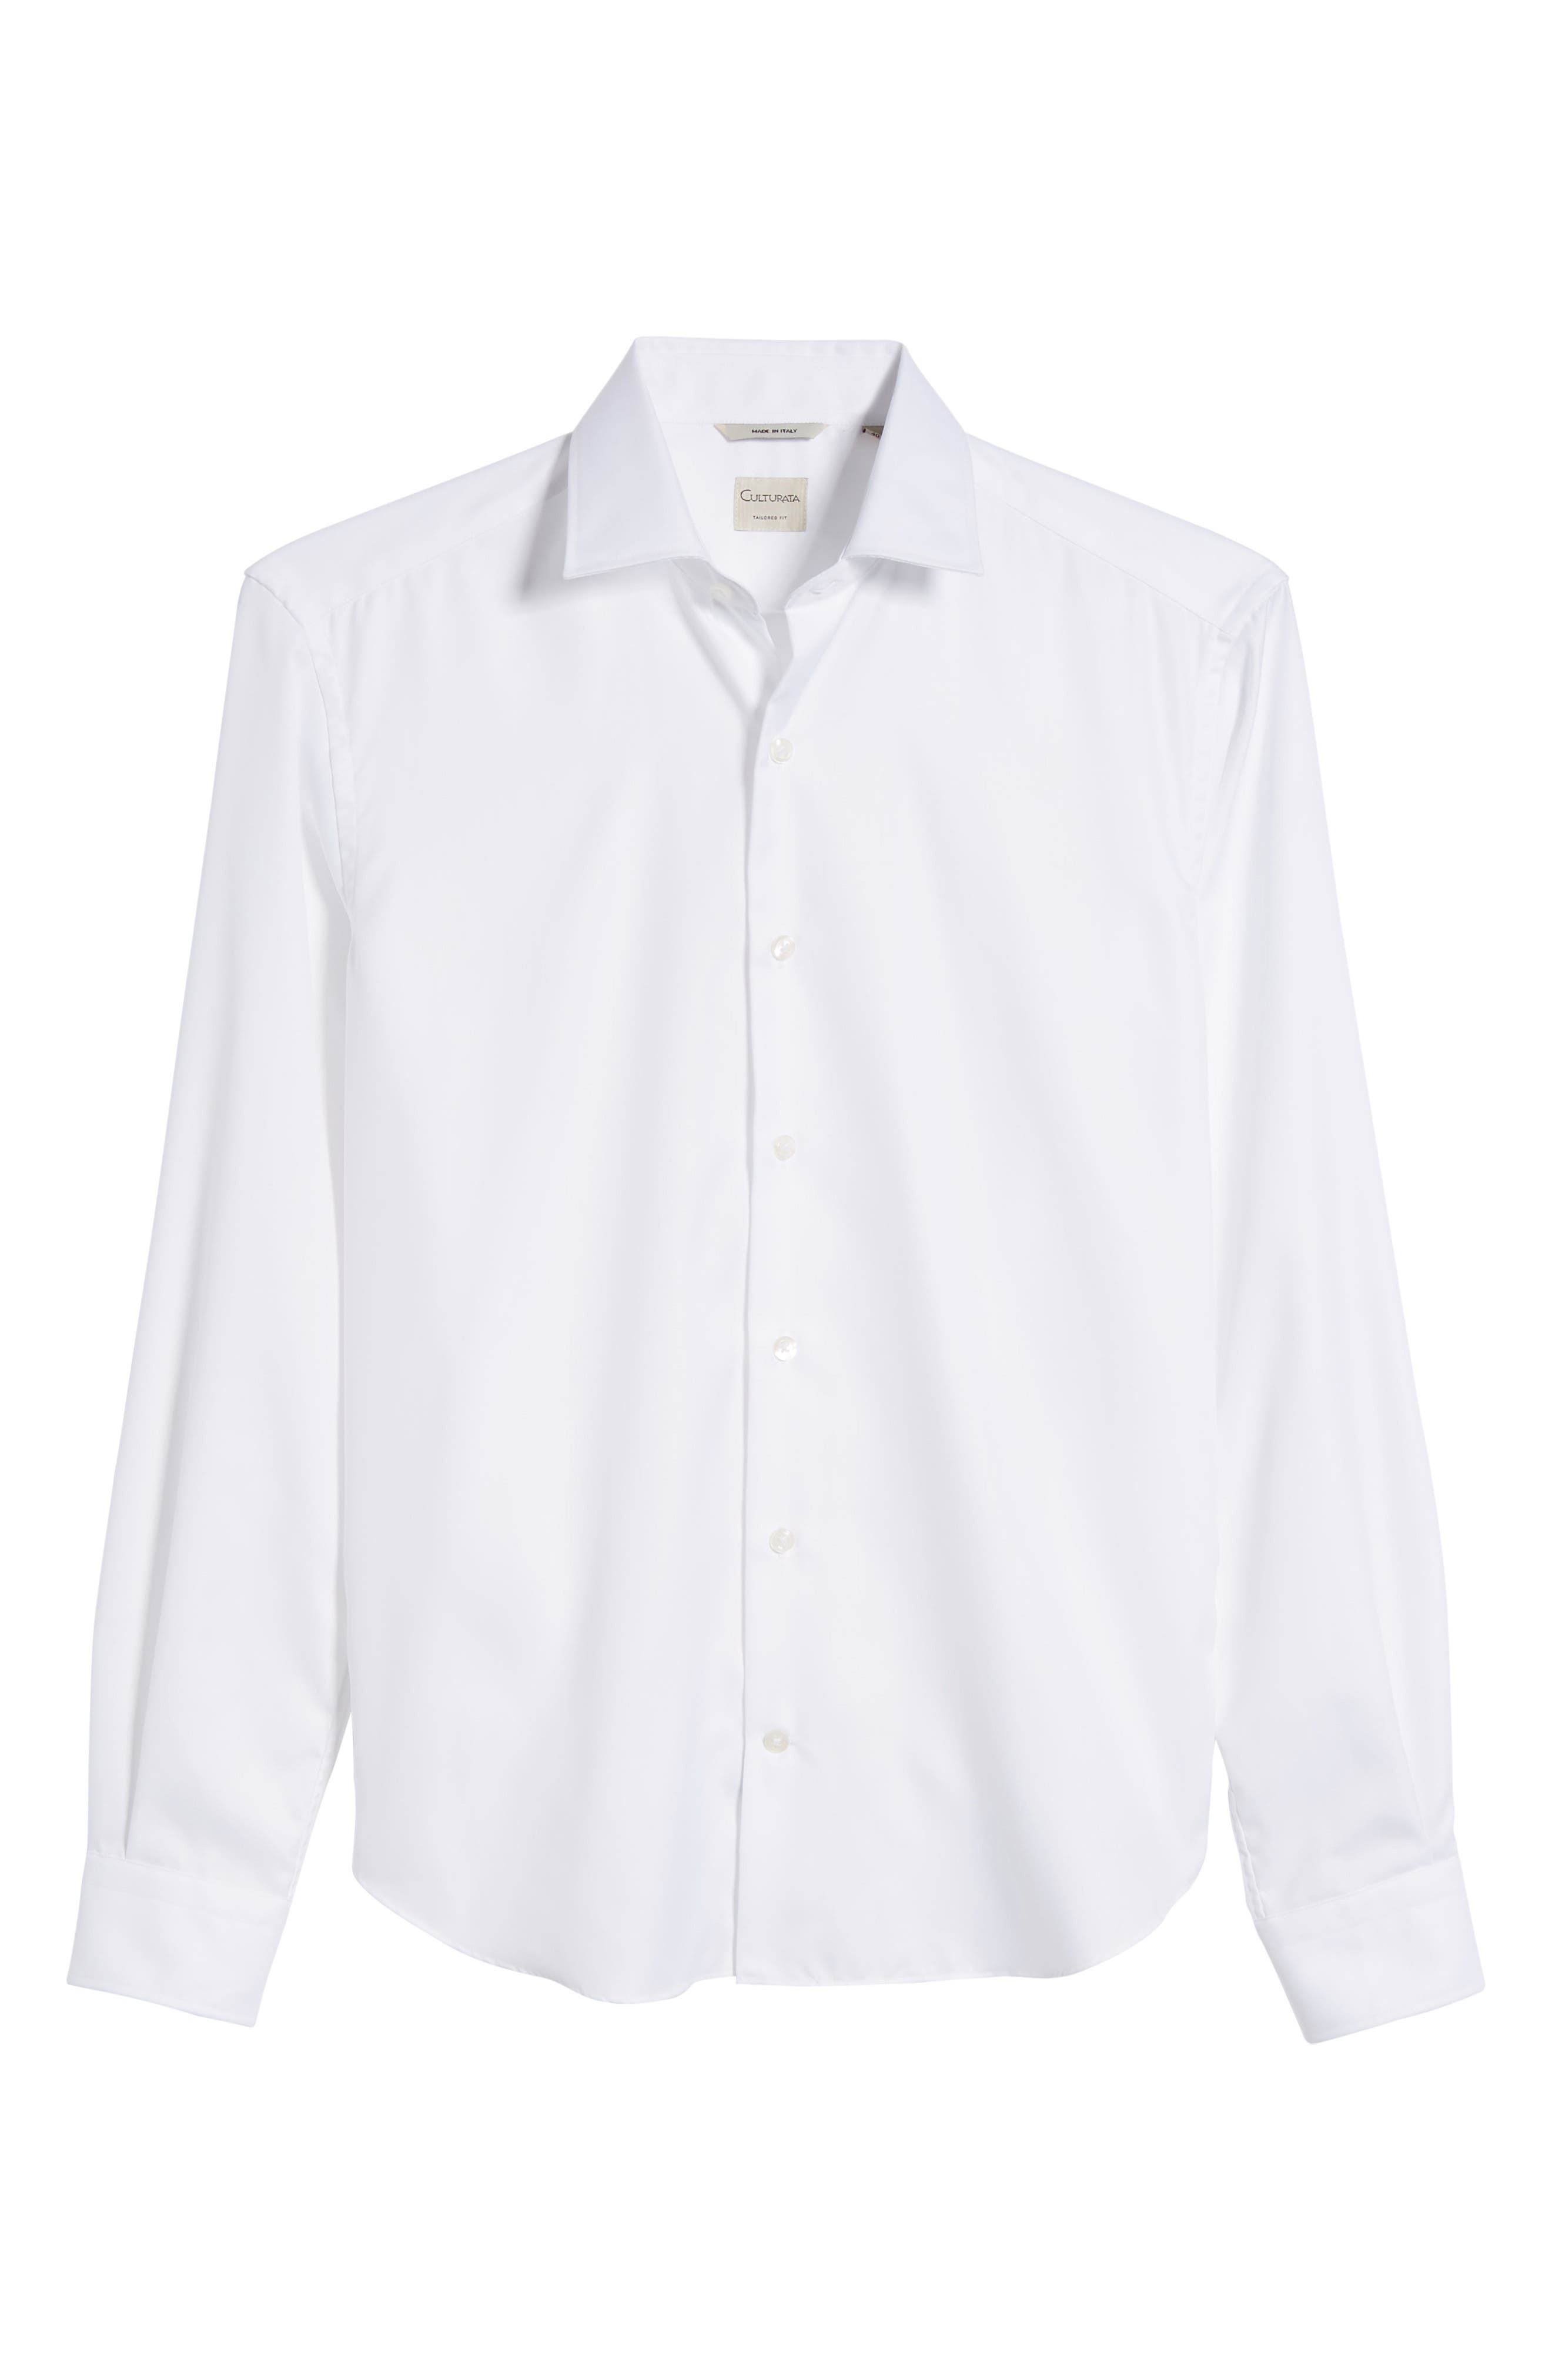 Crease Free Extra Soft Sport Shirt,                             Alternate thumbnail 6, color,                             White